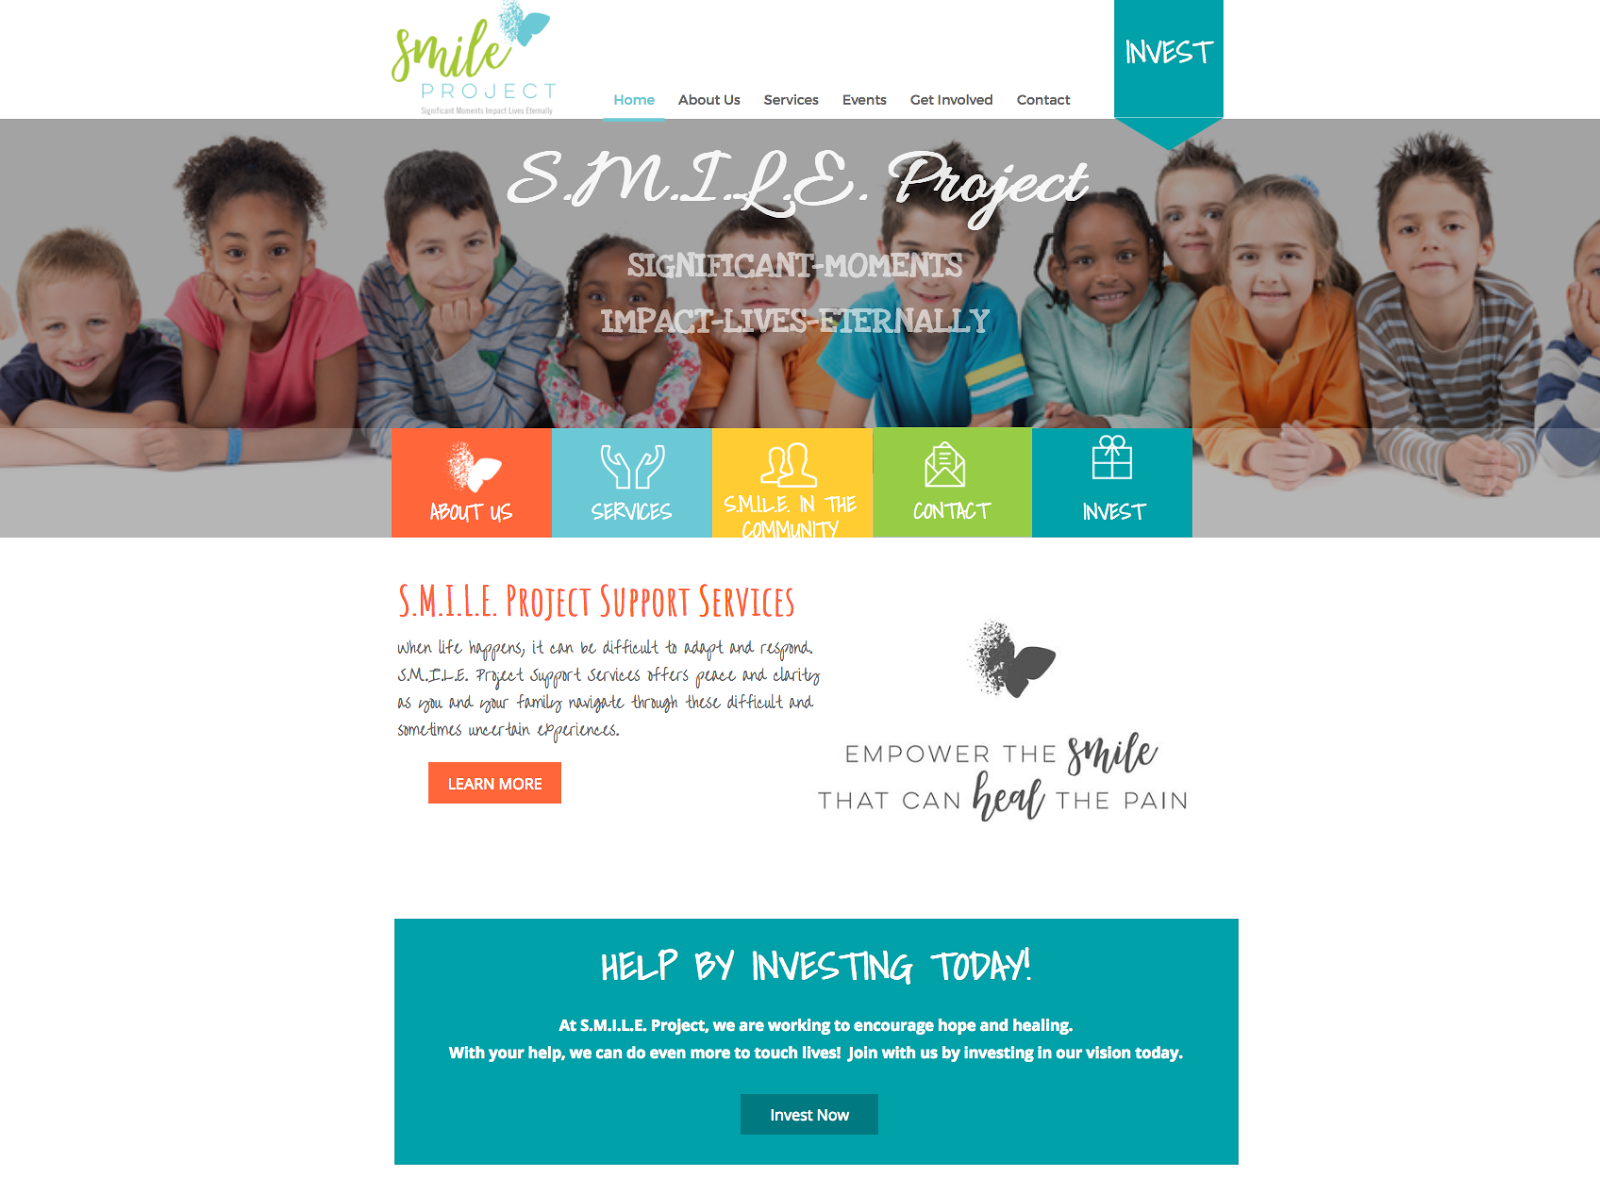 Home Smile Project Empowers